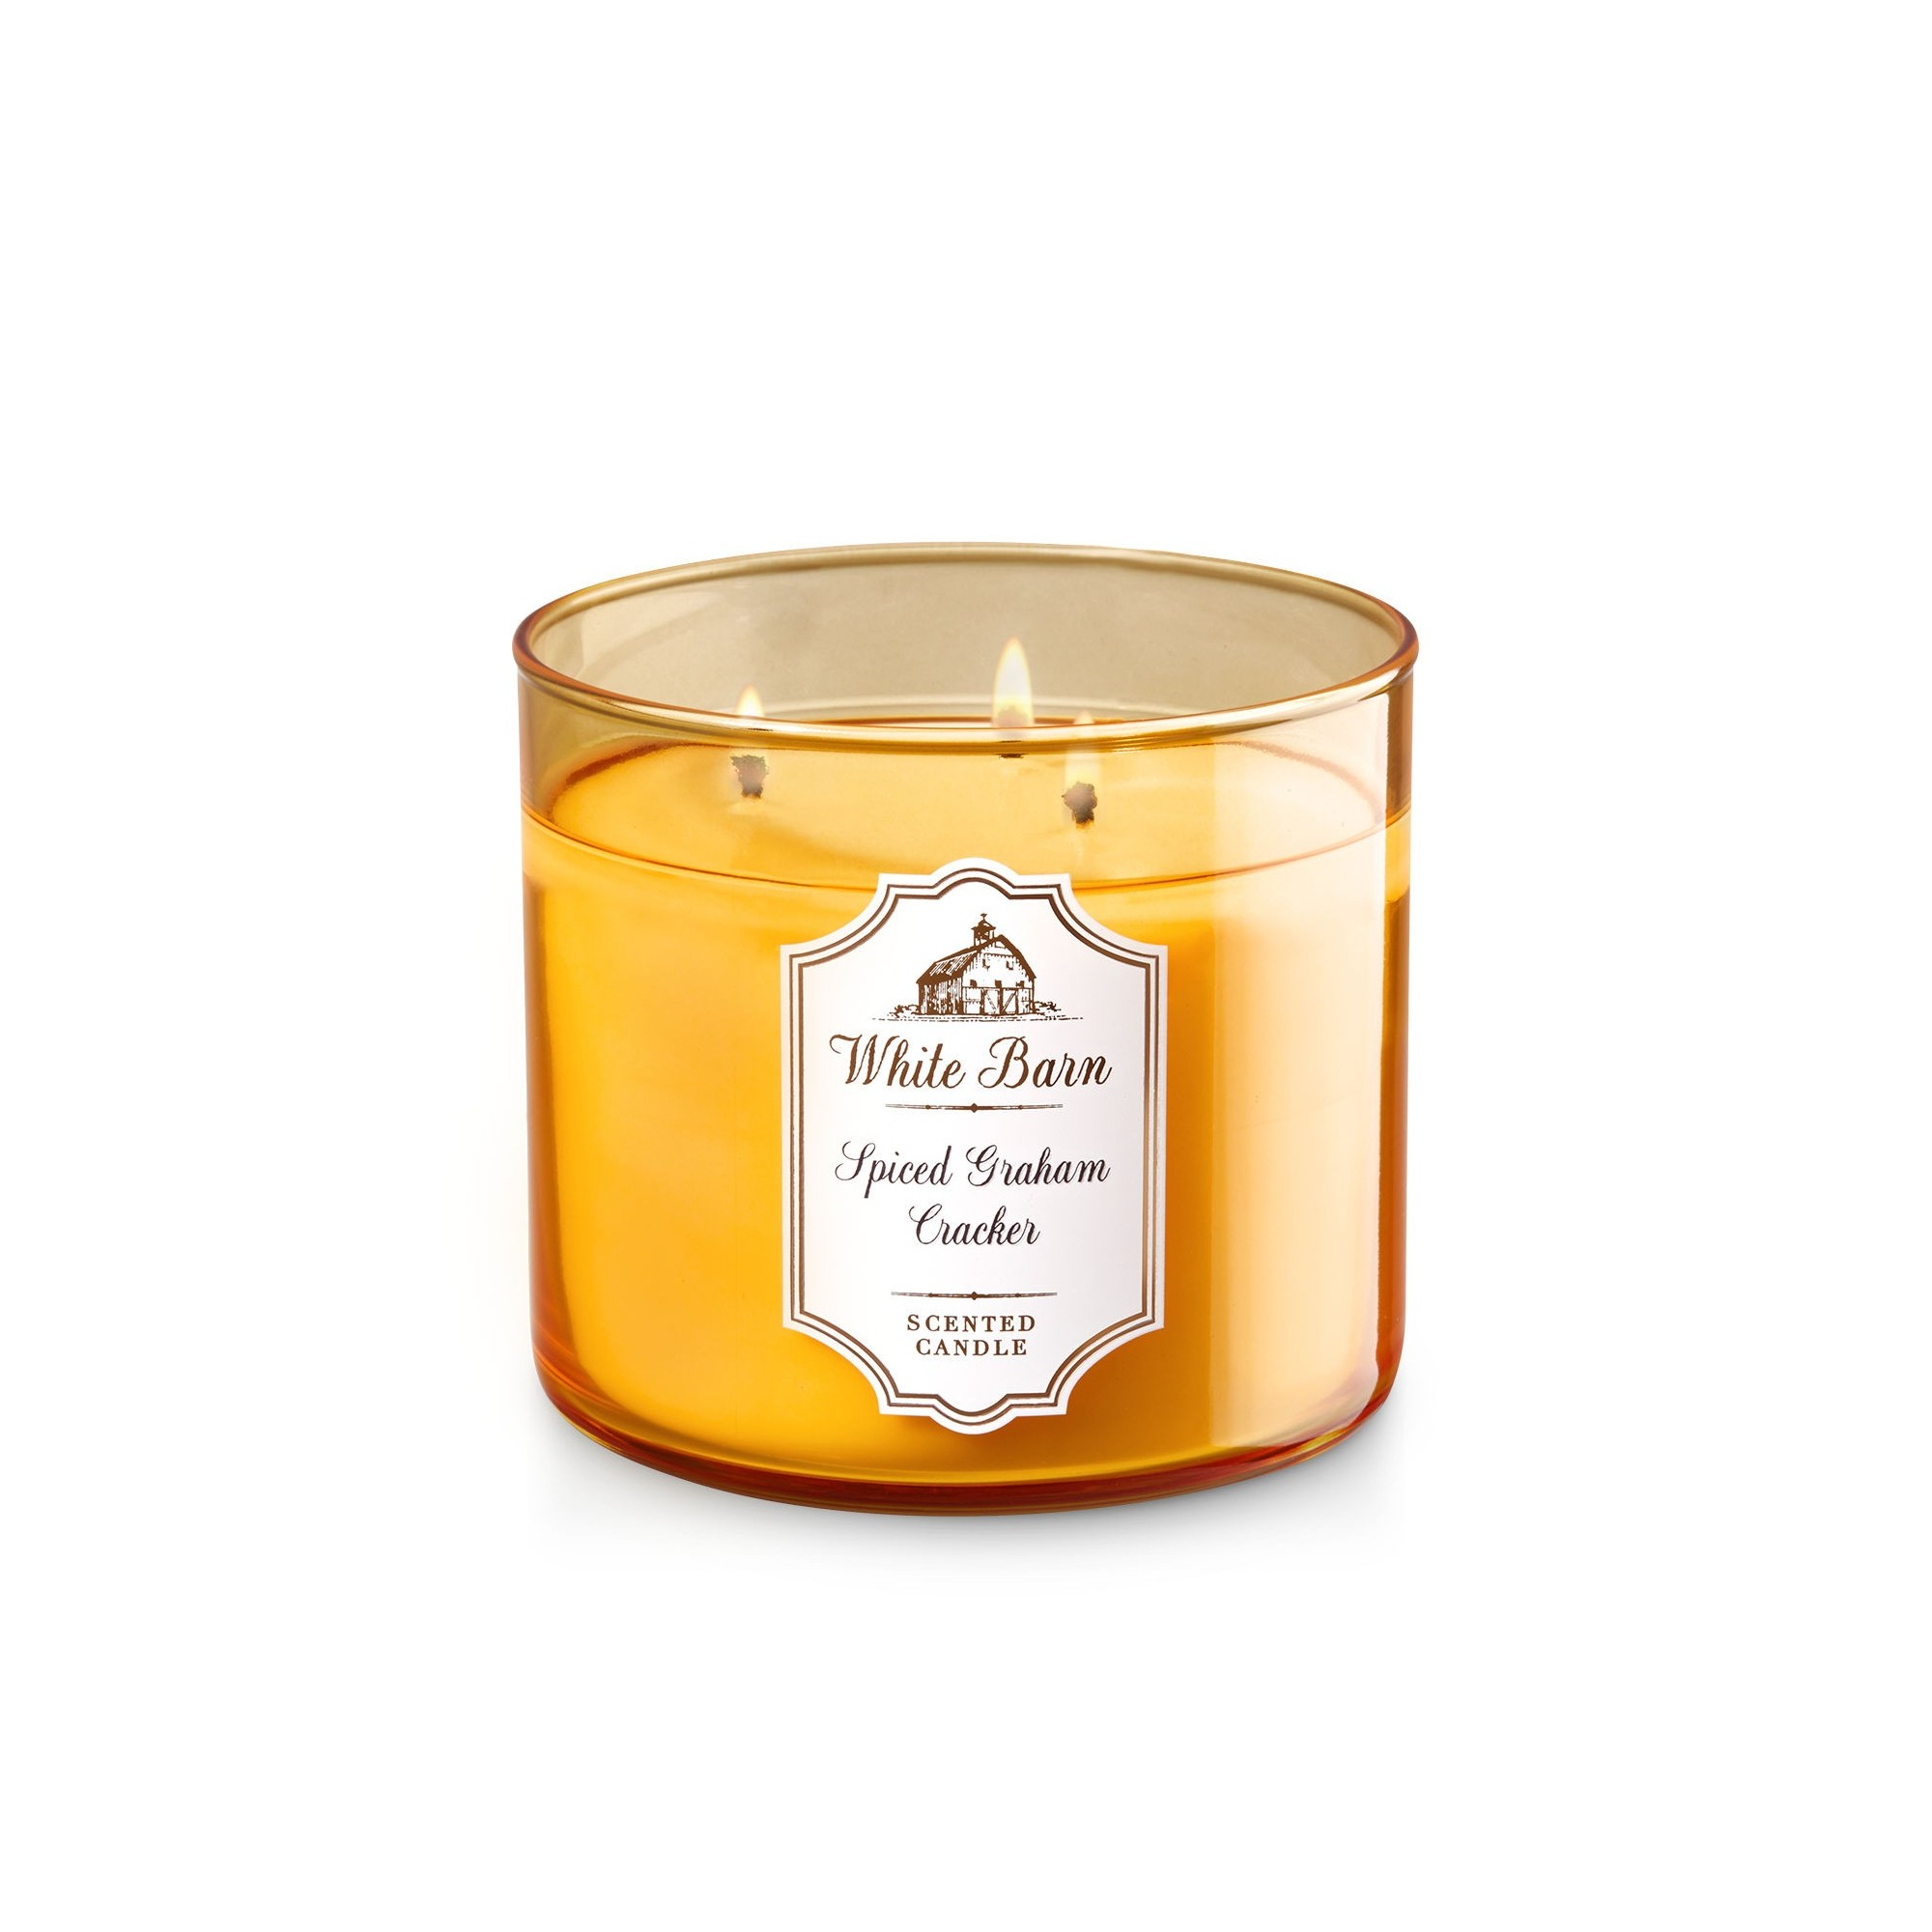 Bath & Body Works White Barn Spiced Graham Cracker 3 Wick Scented Candle